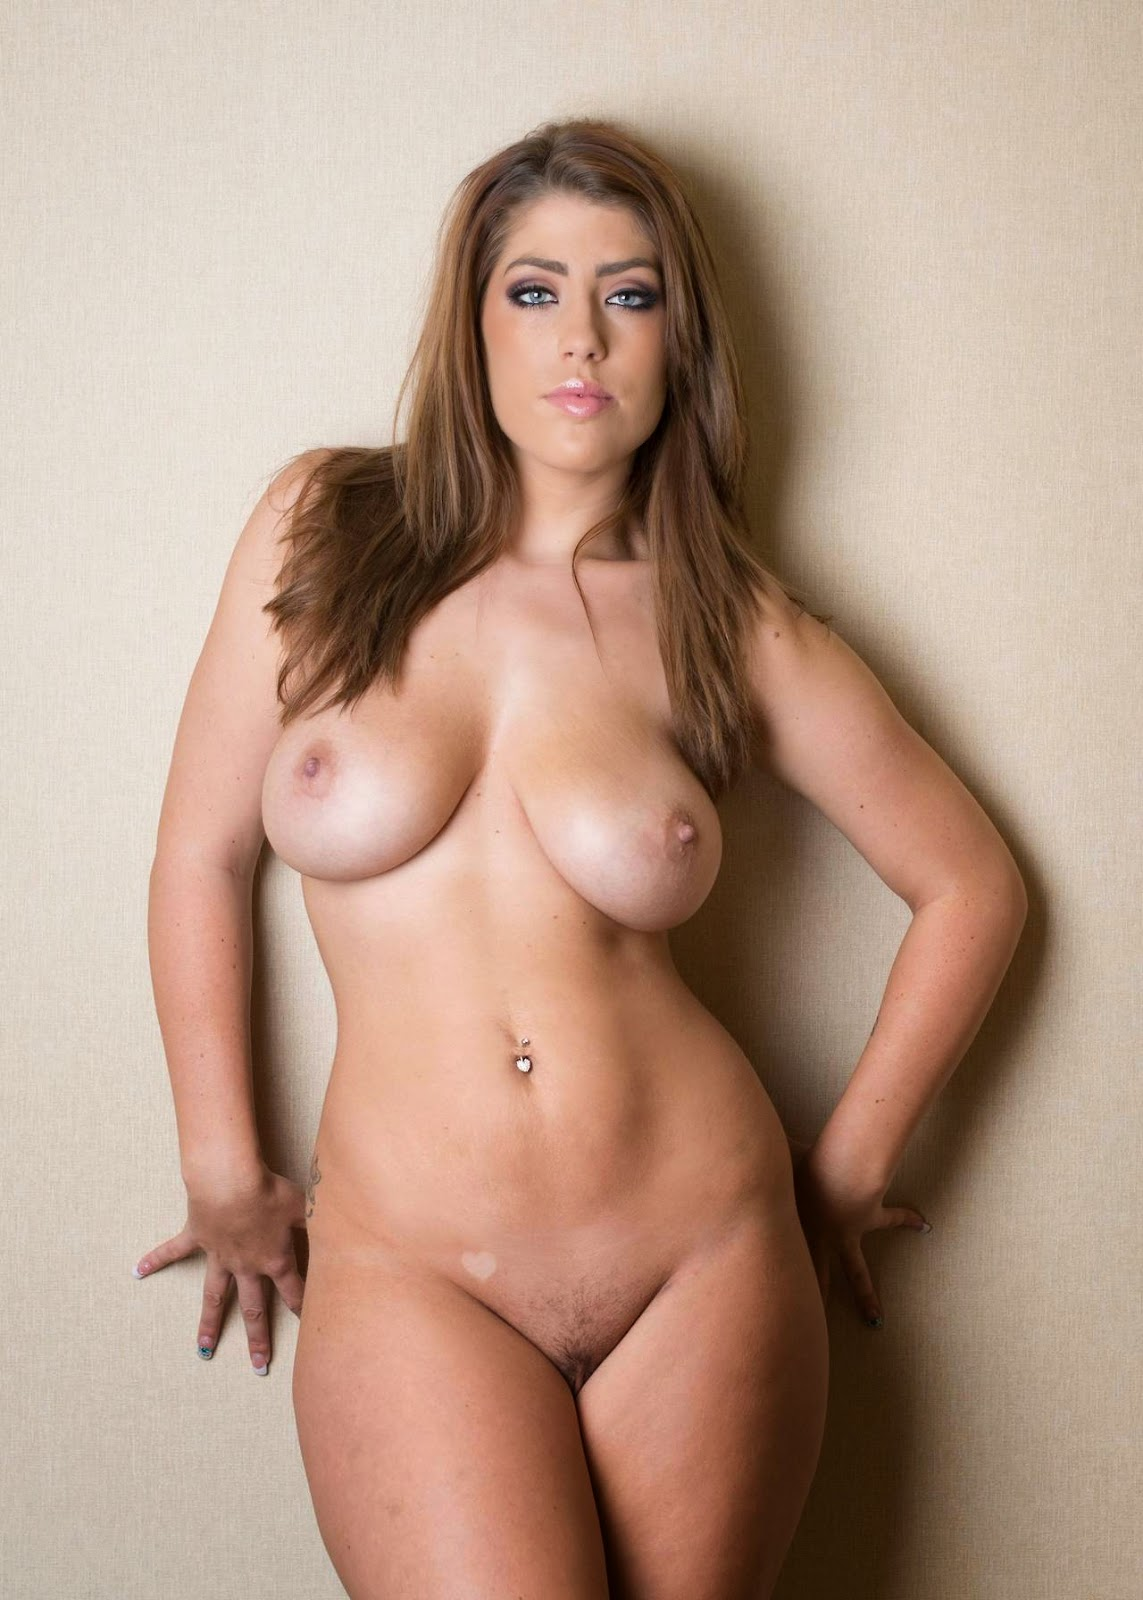 jean pussy Emily nude